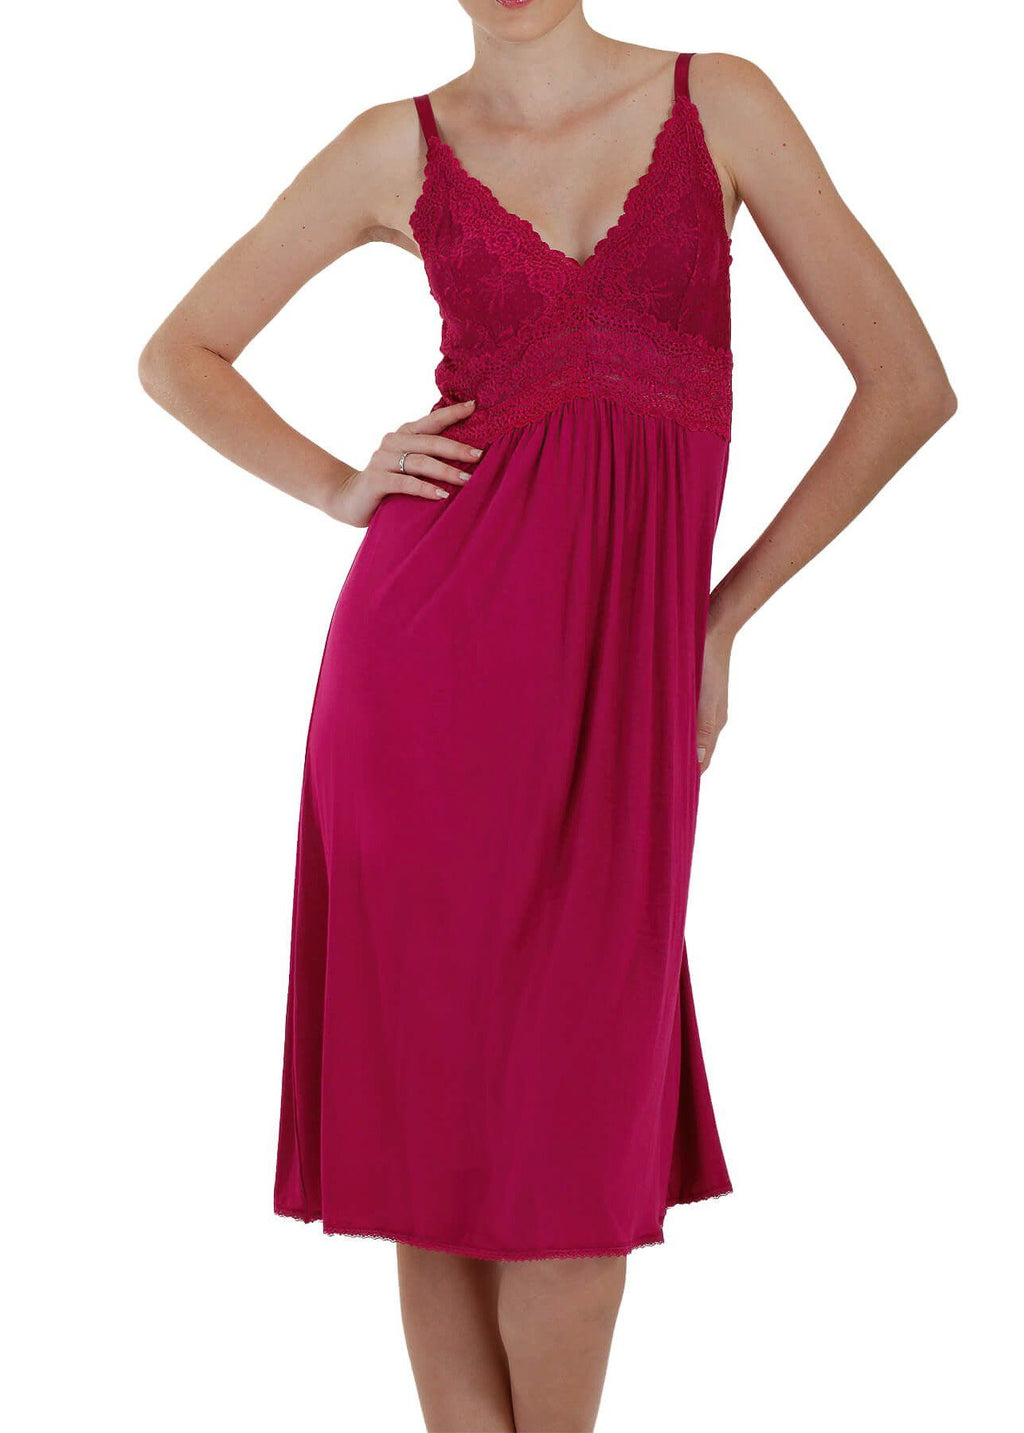 Bliss Knit Nightgown - Berry Mystique Intimates